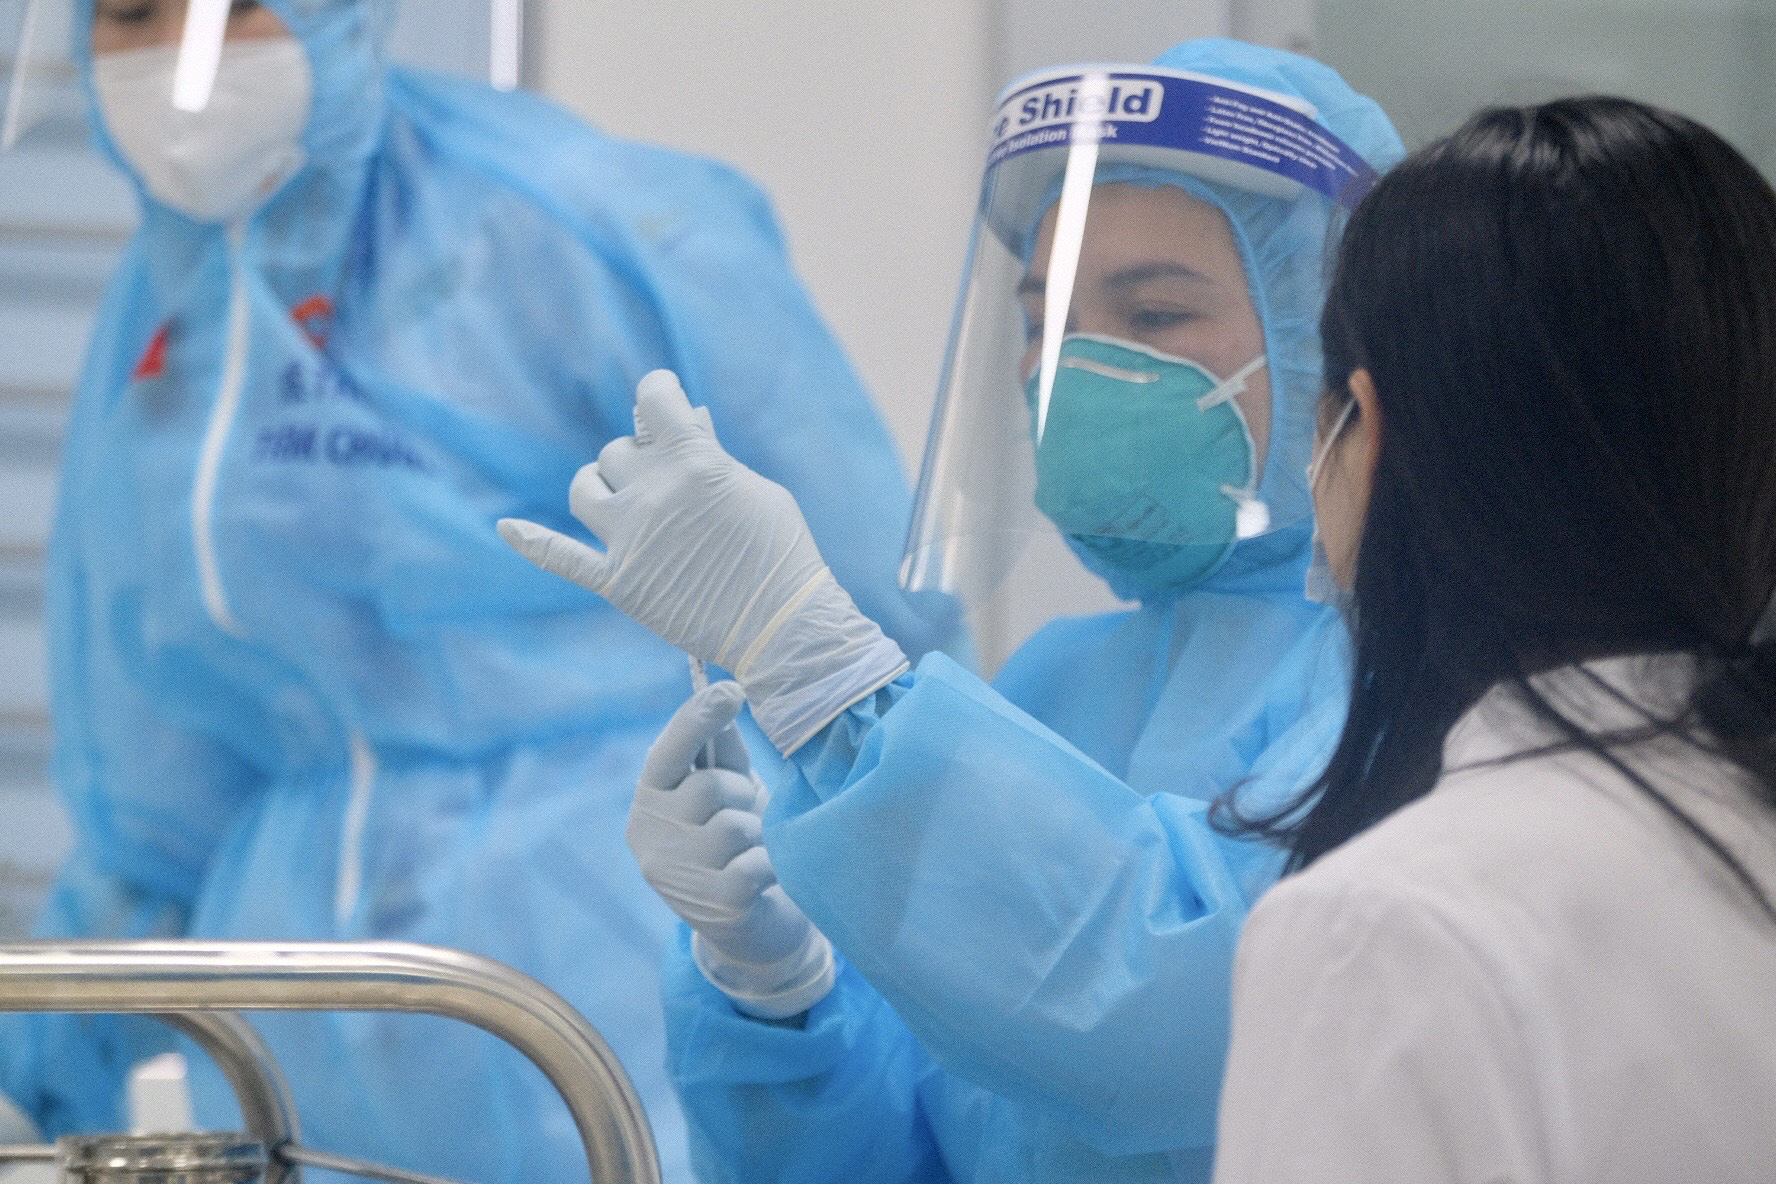 A health worker prepares for COVID-19 vaccination at the National Hospital for Tropical Diseases in Hanoi, March 8, 2021. Photo: Nam Tran / Tuoi Tre